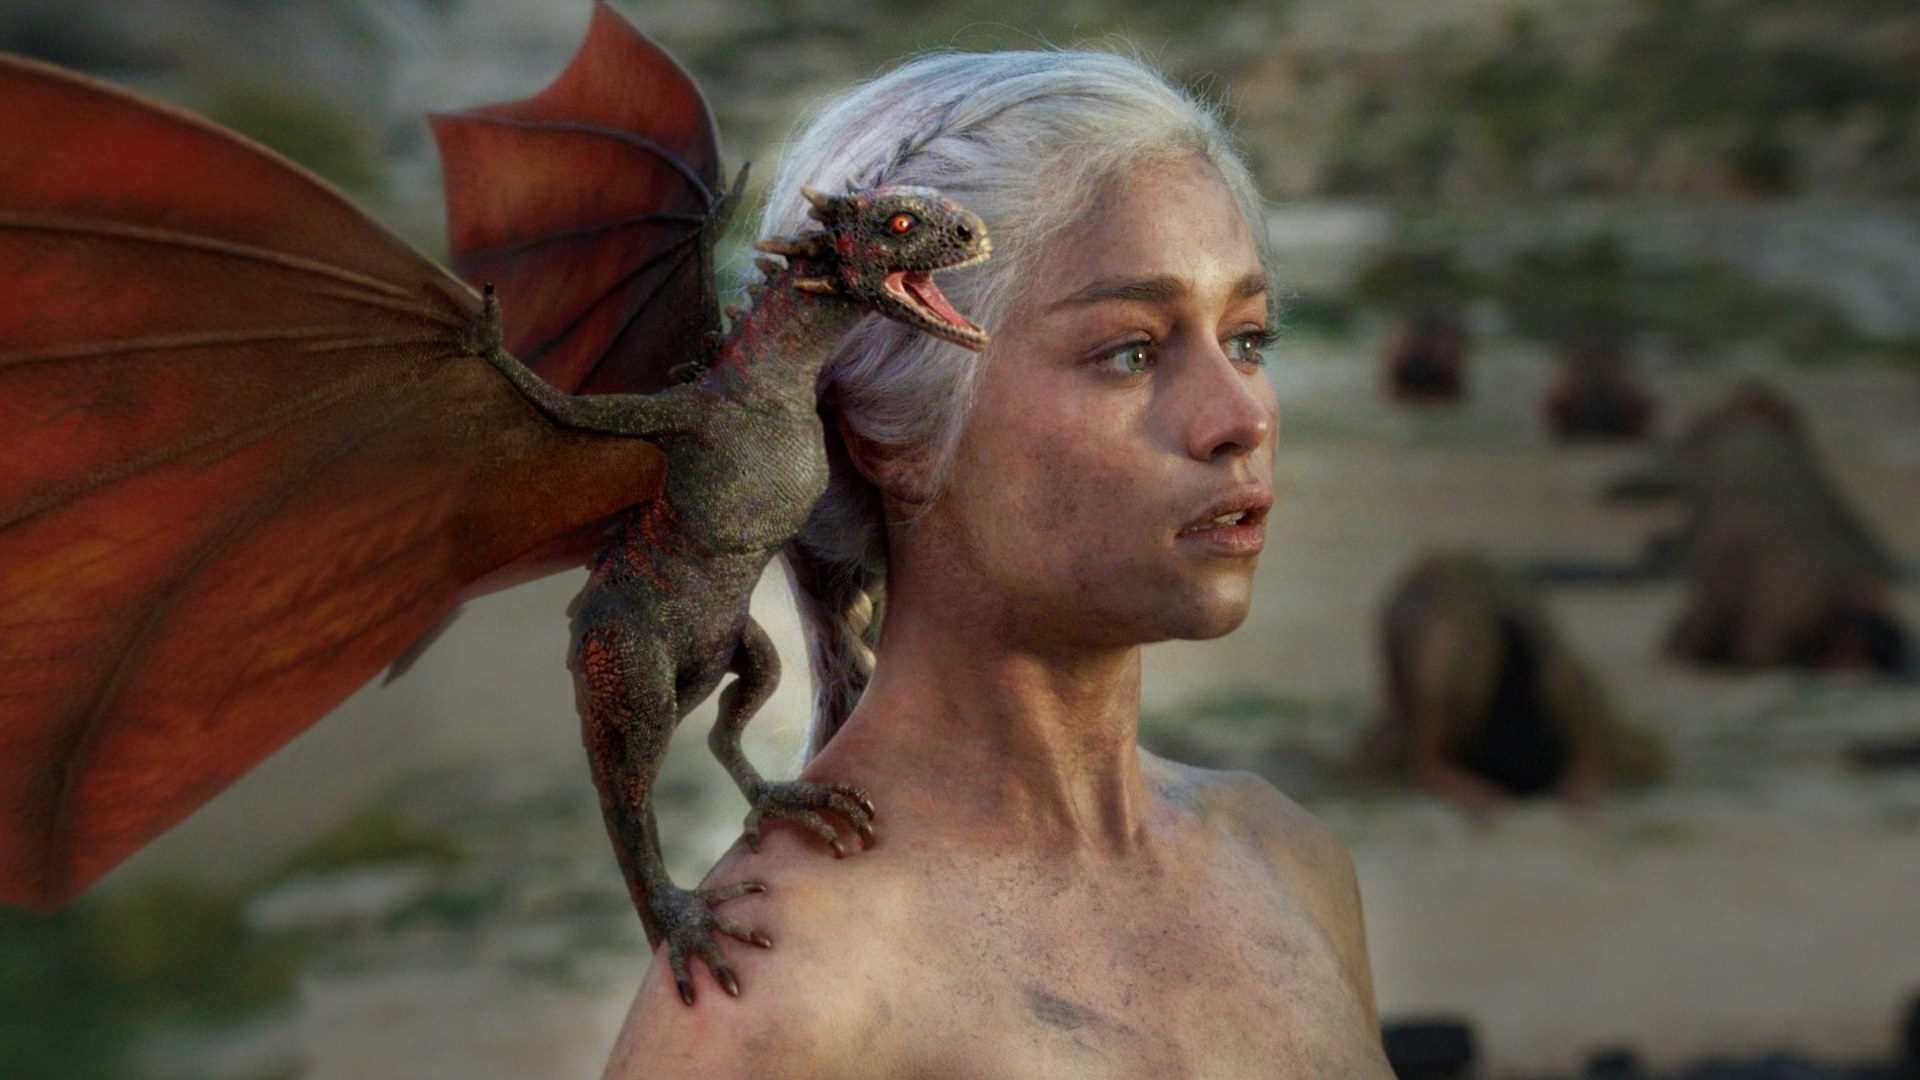 Emmy-Winning 'Game of Thrones' Composer Ramin Djawadi Will Score HBO Prequel Series 'House of the Dragon'